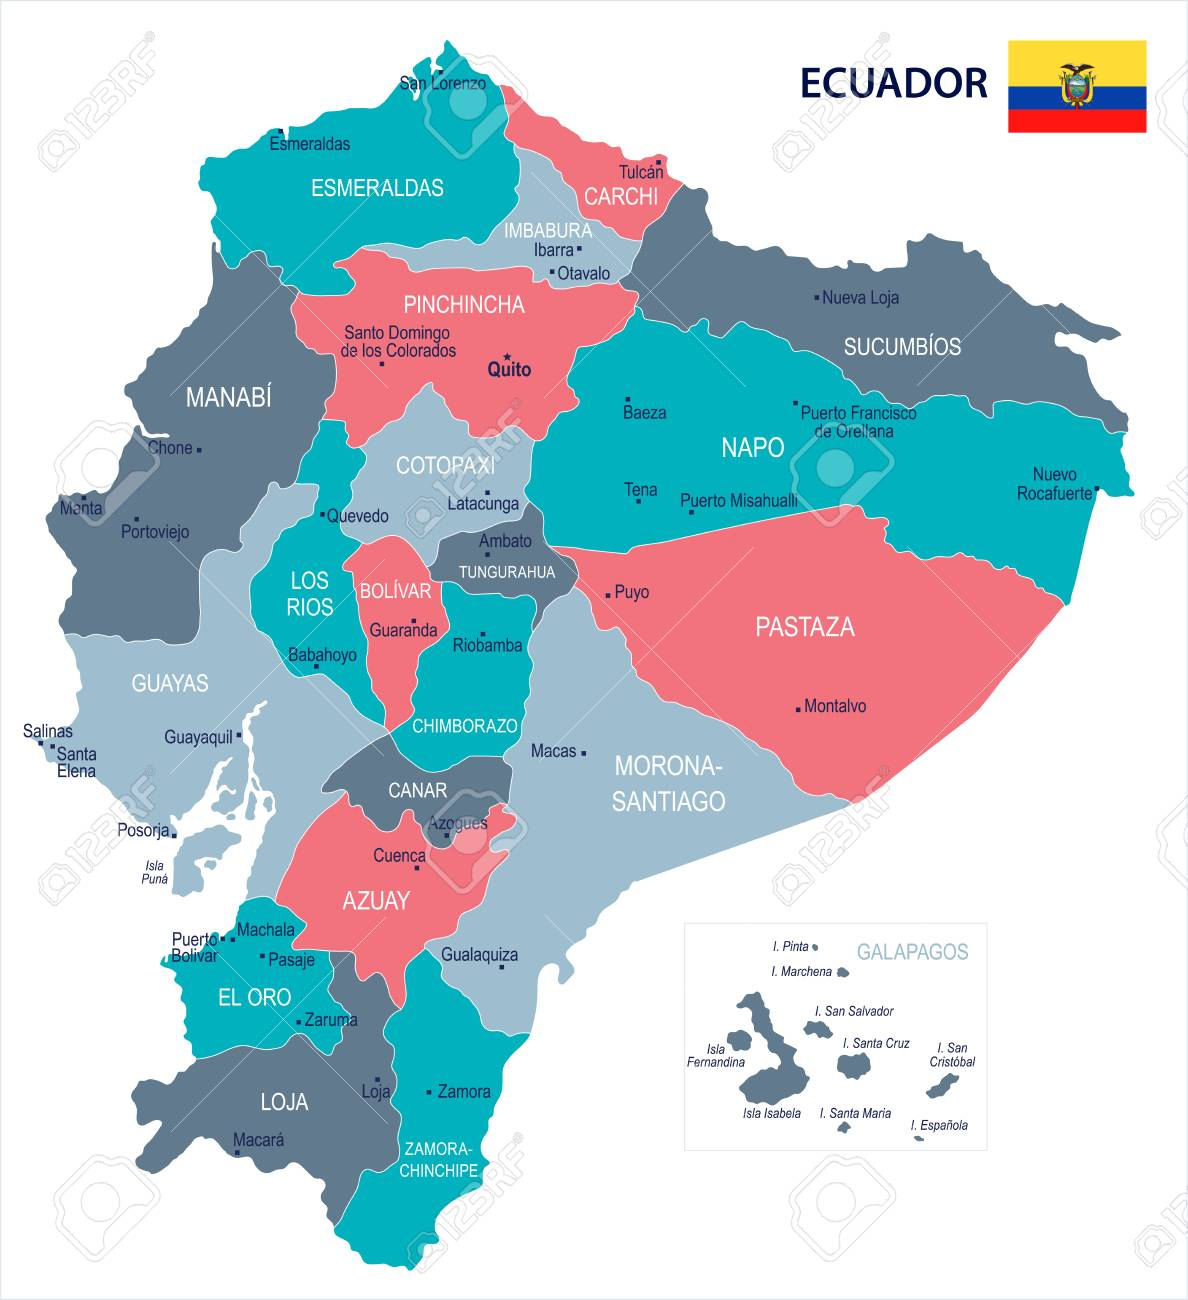 Ecuador Map And Flag High Detailed Vector Illustration Royalty Free Cliparts Vectors And Stock Illustration Image 93004839